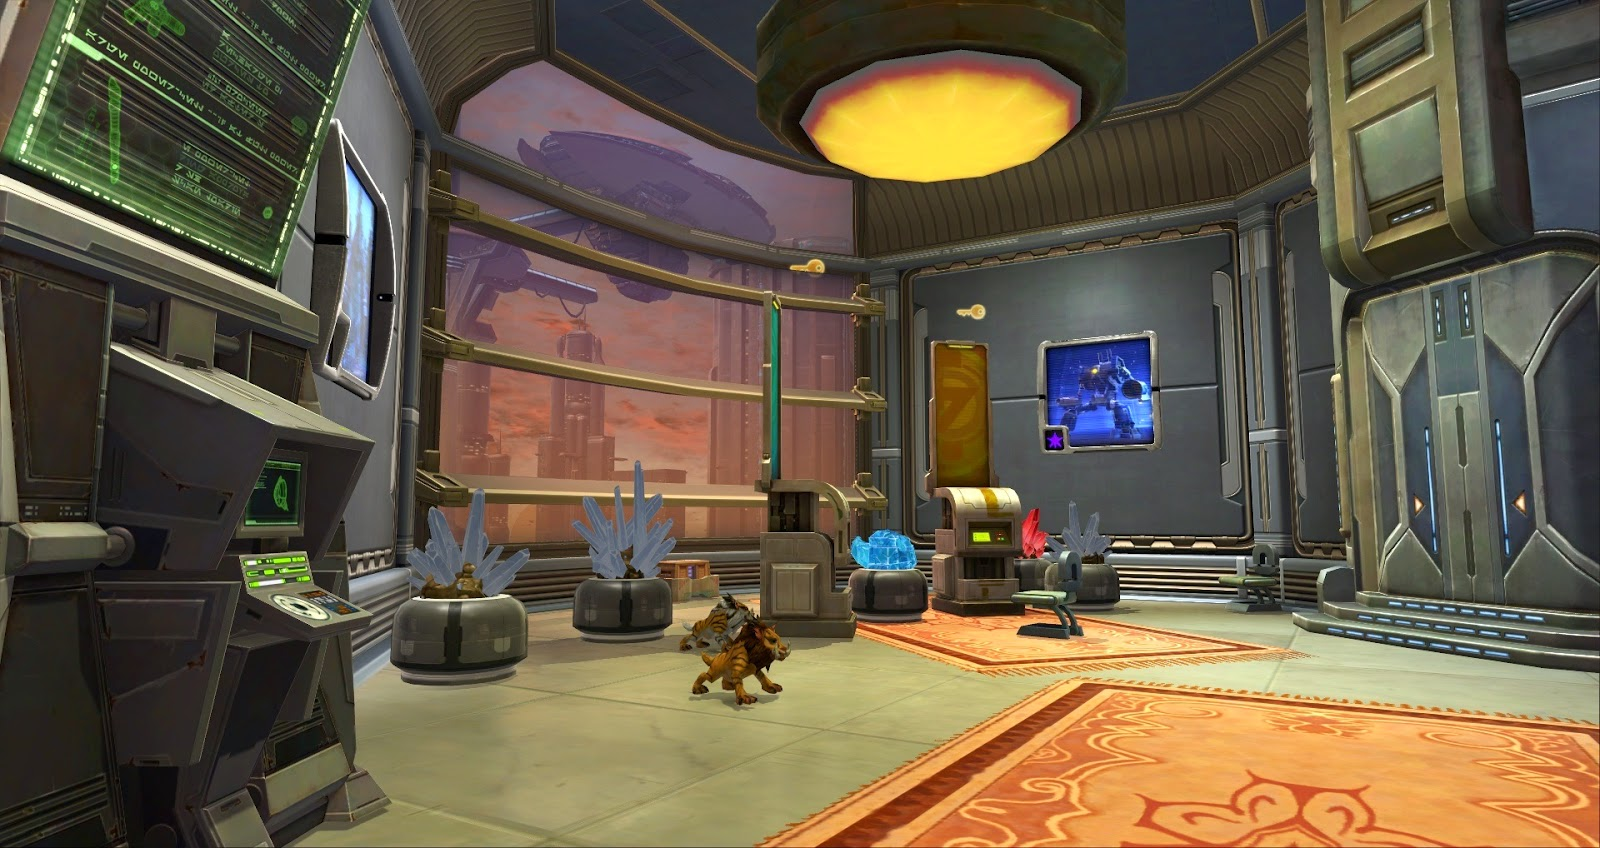 going commando a swtor fan blog welcome to my half empty i intentionally made the entrance area a bit messy looking as i picture my characters coming home after a long day of work feeling tired and dropping